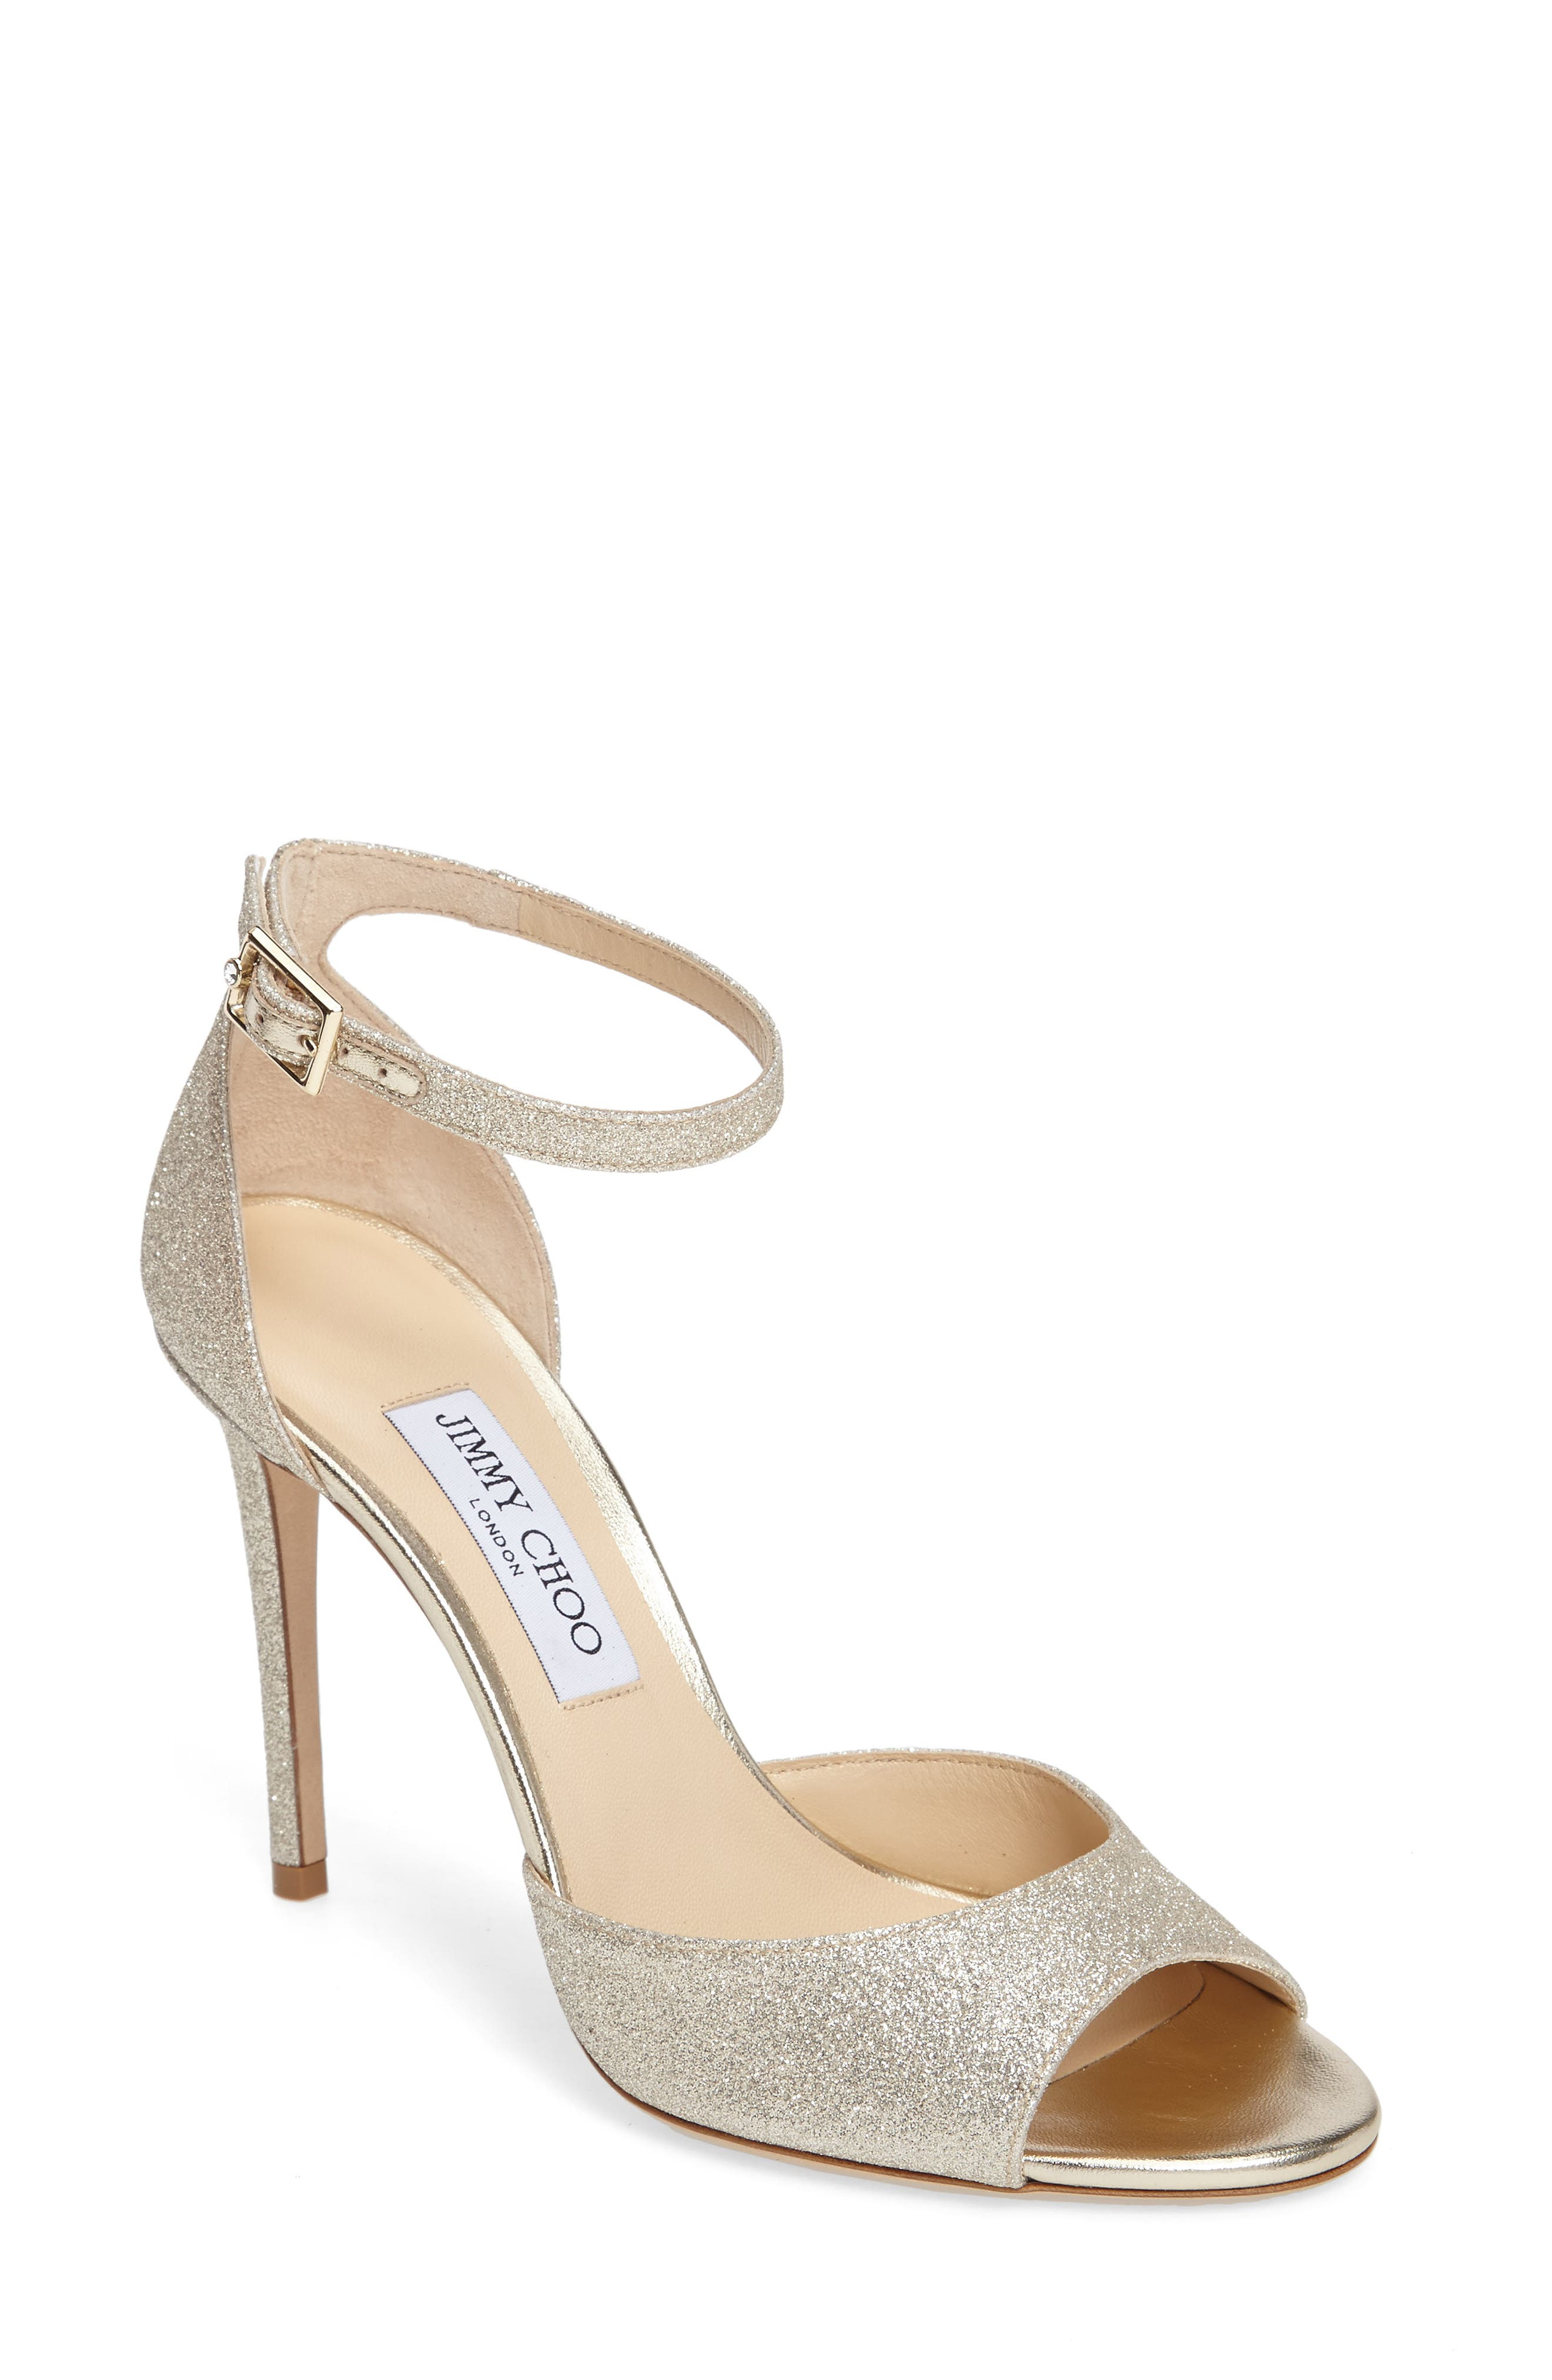 Annie Ankle Strap Sandal,                             Main thumbnail 1, color,                             PLATINUM